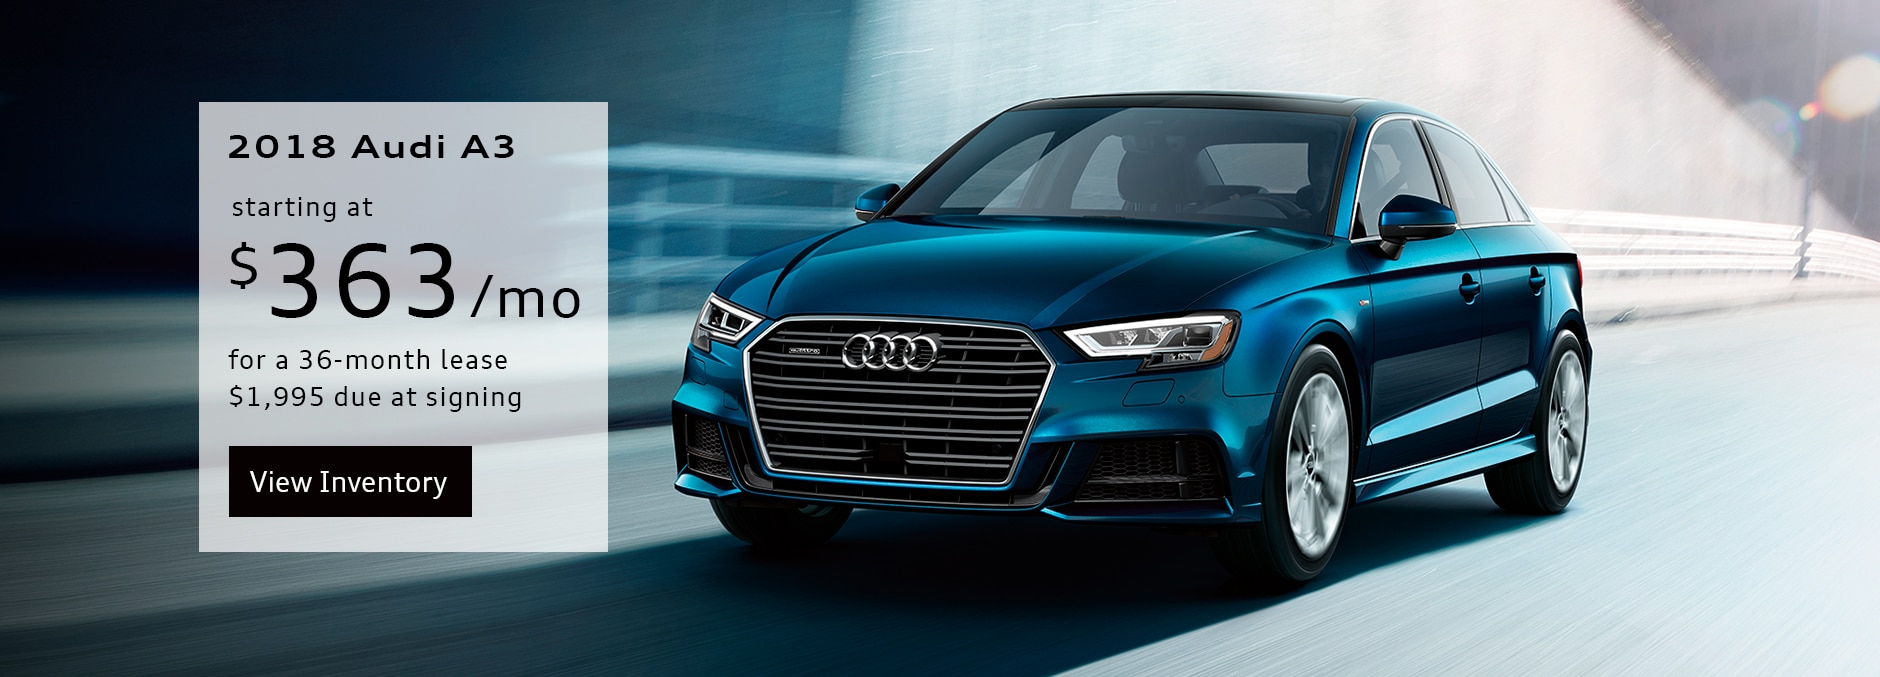 Audi Lease Offers Audi North Houston - Audi a3 lease offers